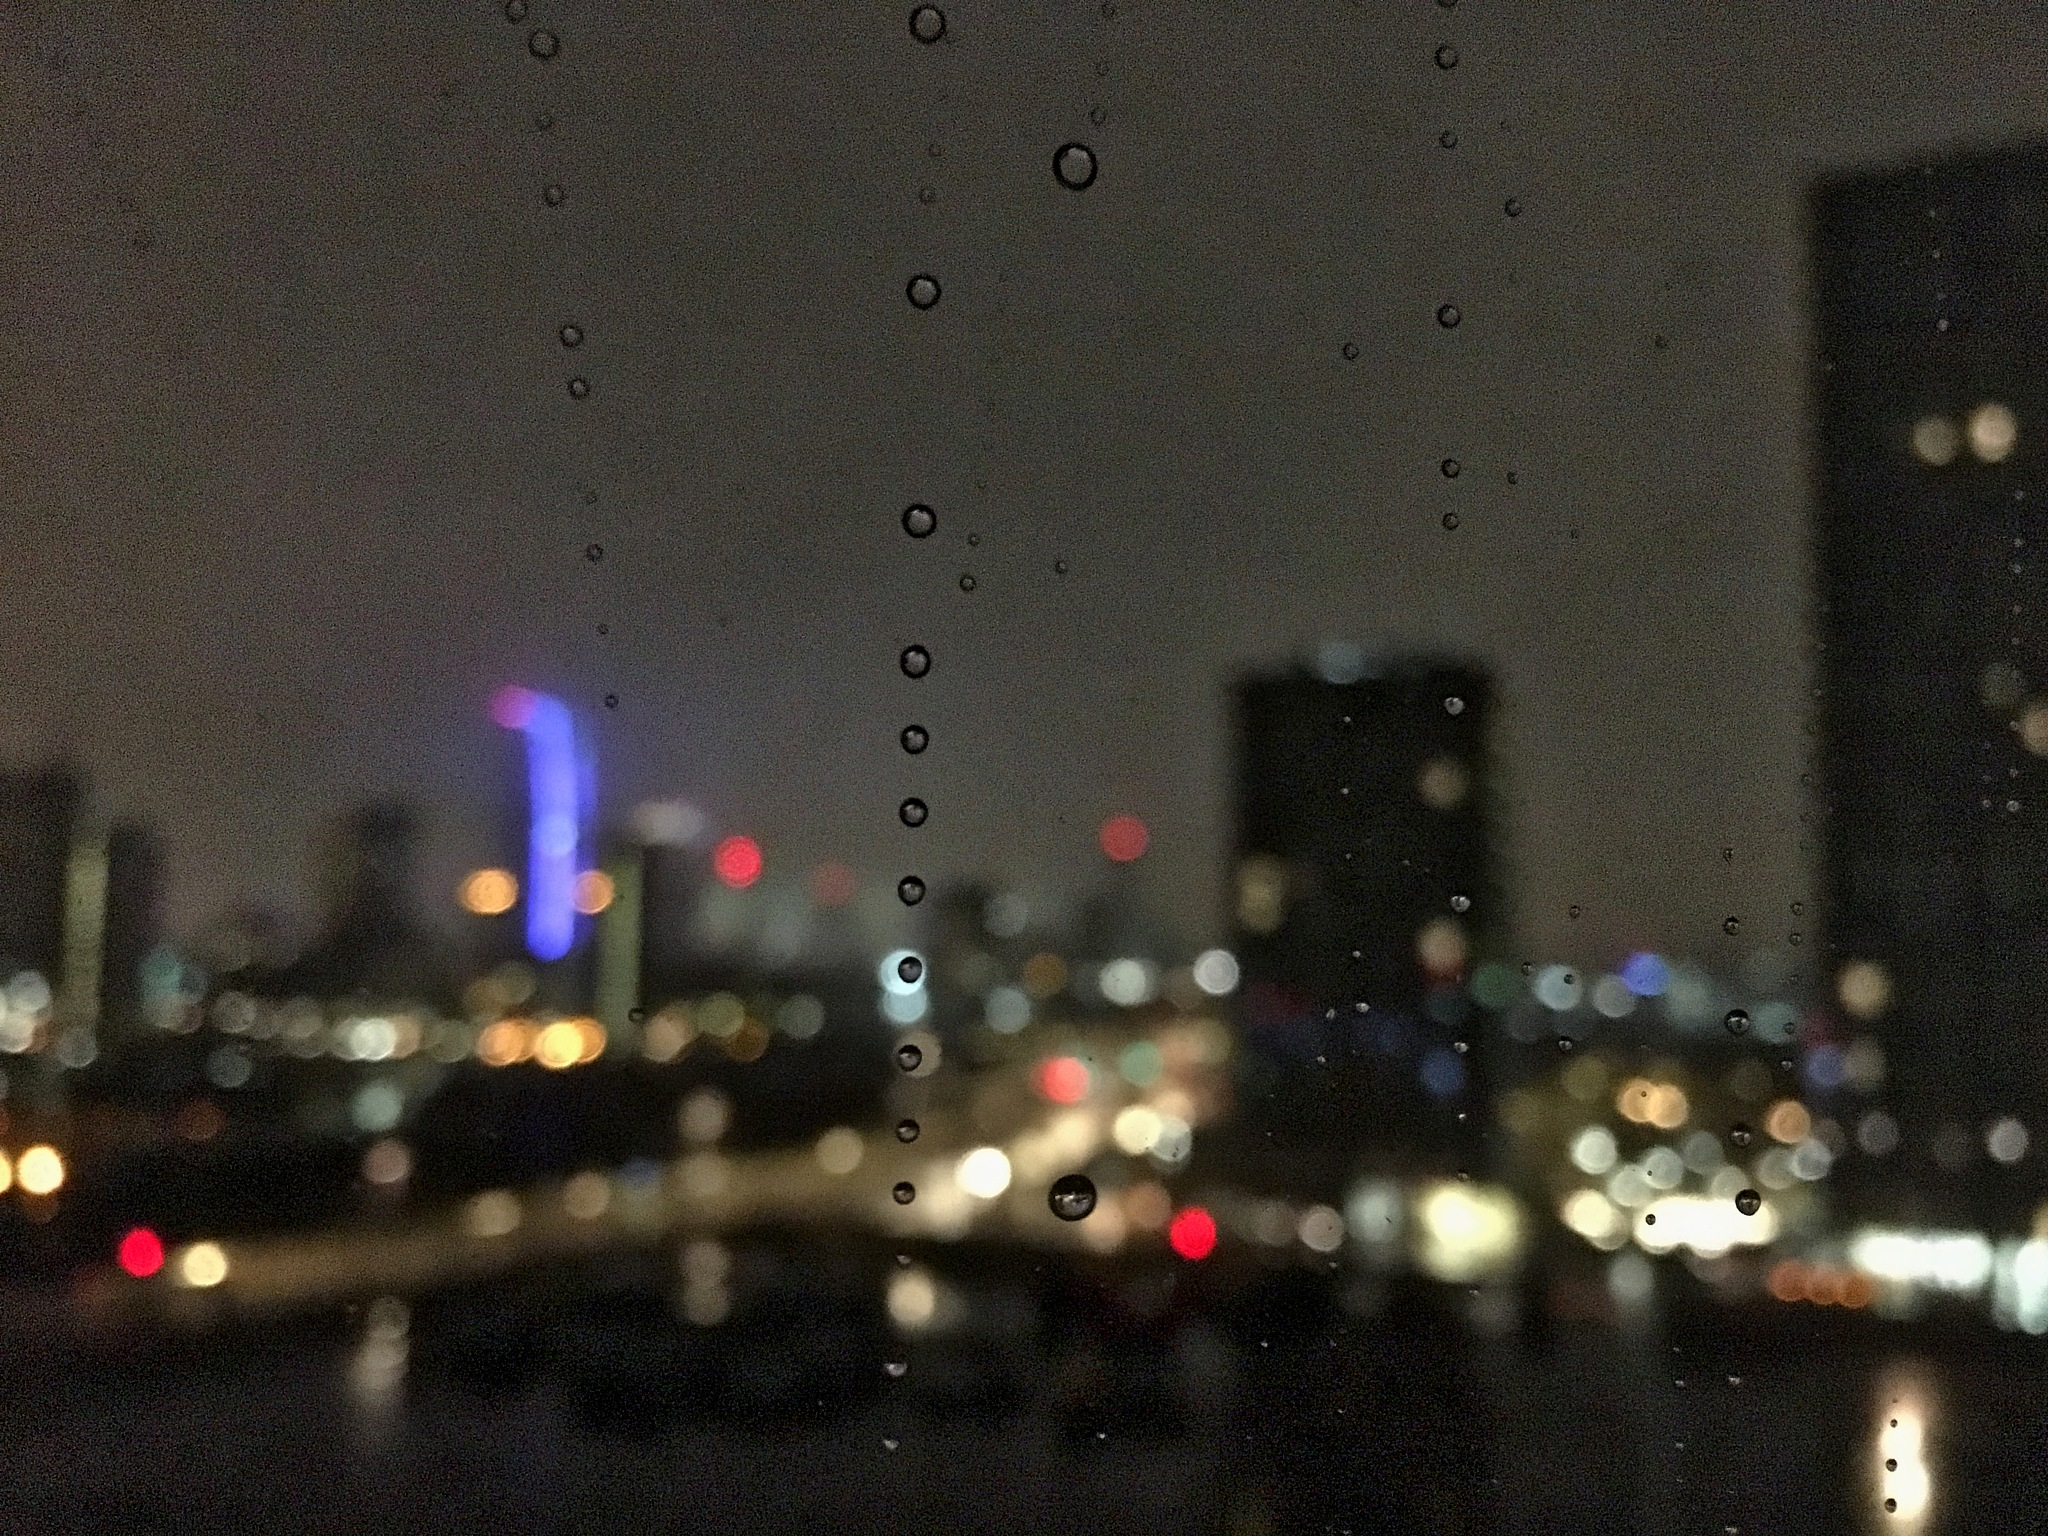 Rain drops across the city by DJW